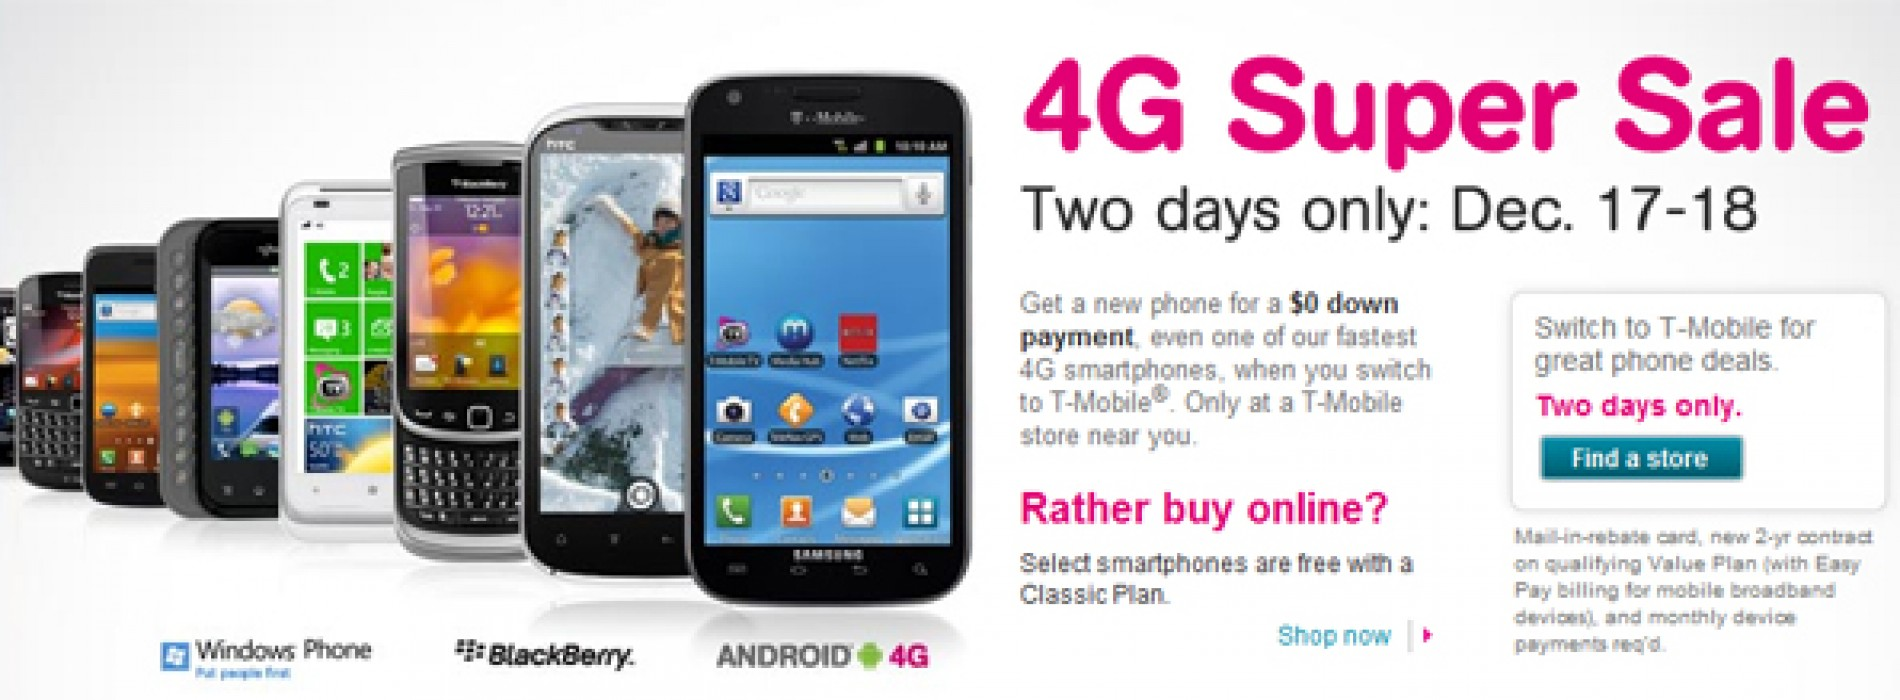 "T-Mobile kicking off ""4G Super Sale"" December 17, offering down payment rebates on all phones"